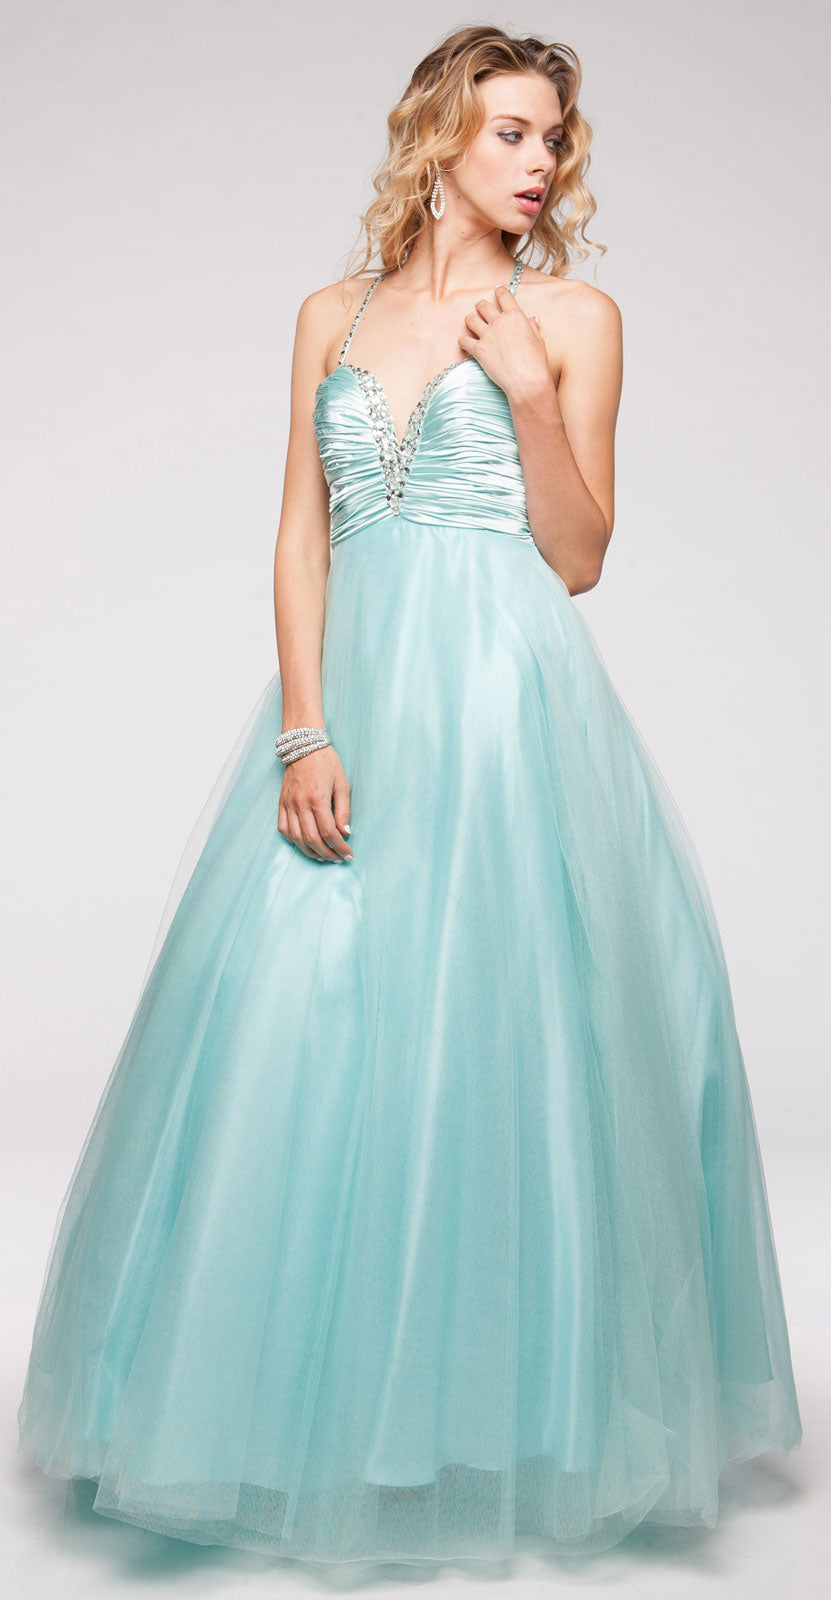 Main image of V-neck Satin Bodice Puffy Mesh Skirt Formal Prom Dress